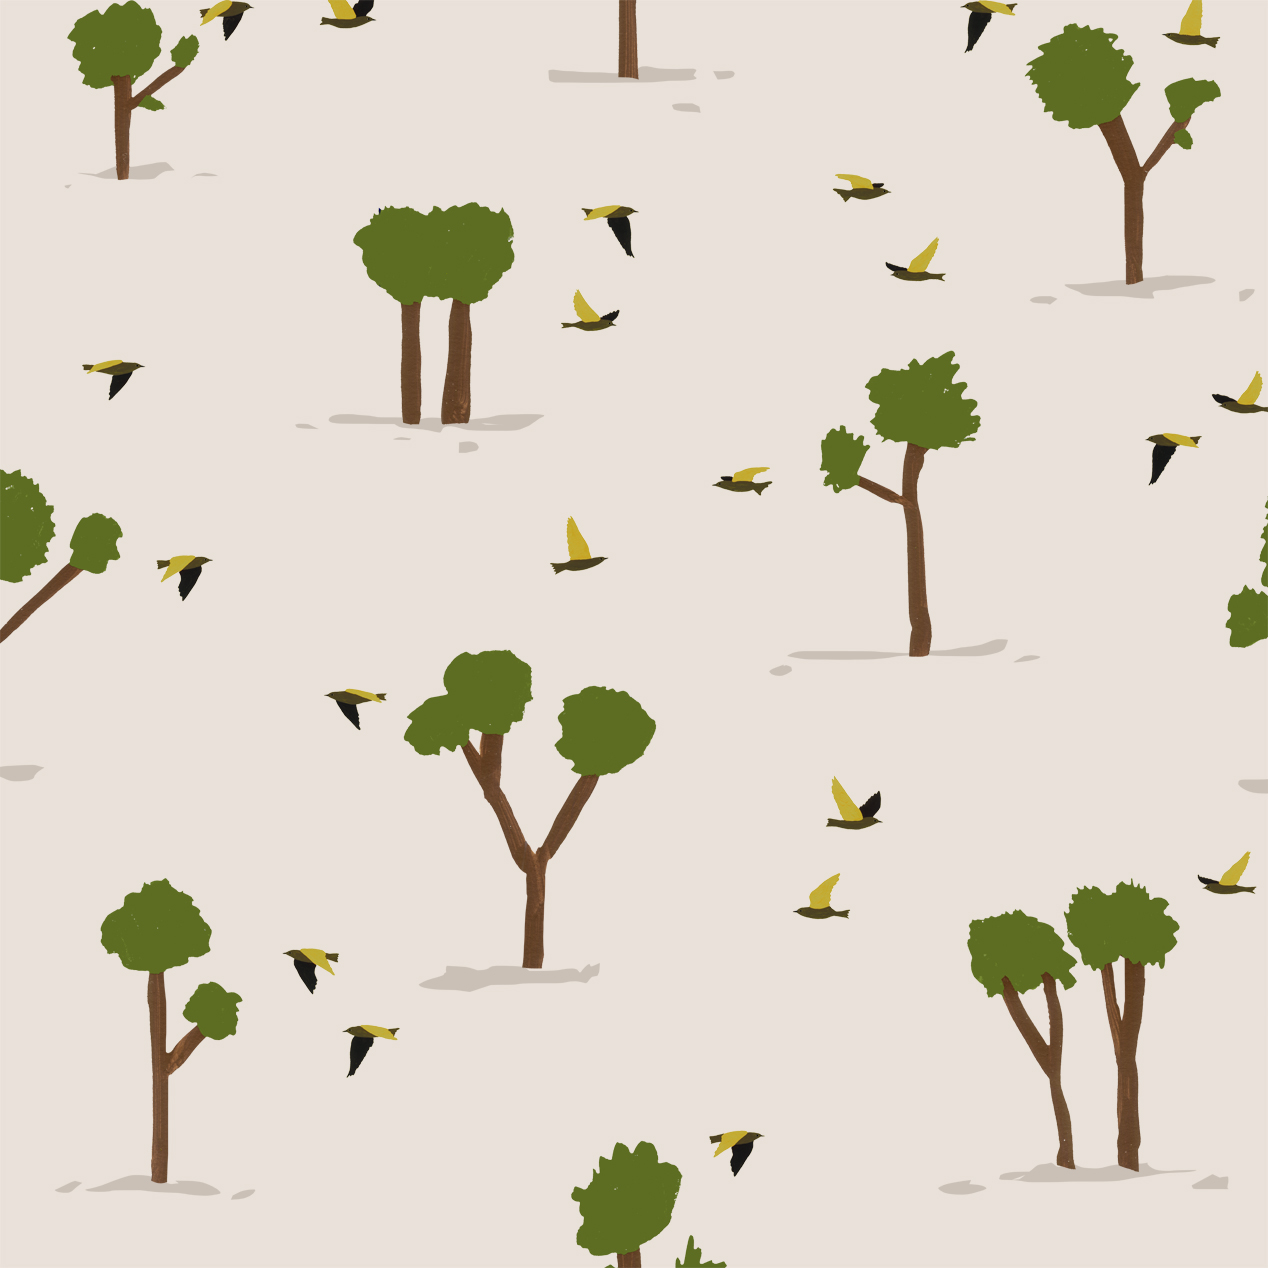 melissa boardman tiny tree pattern.jpg